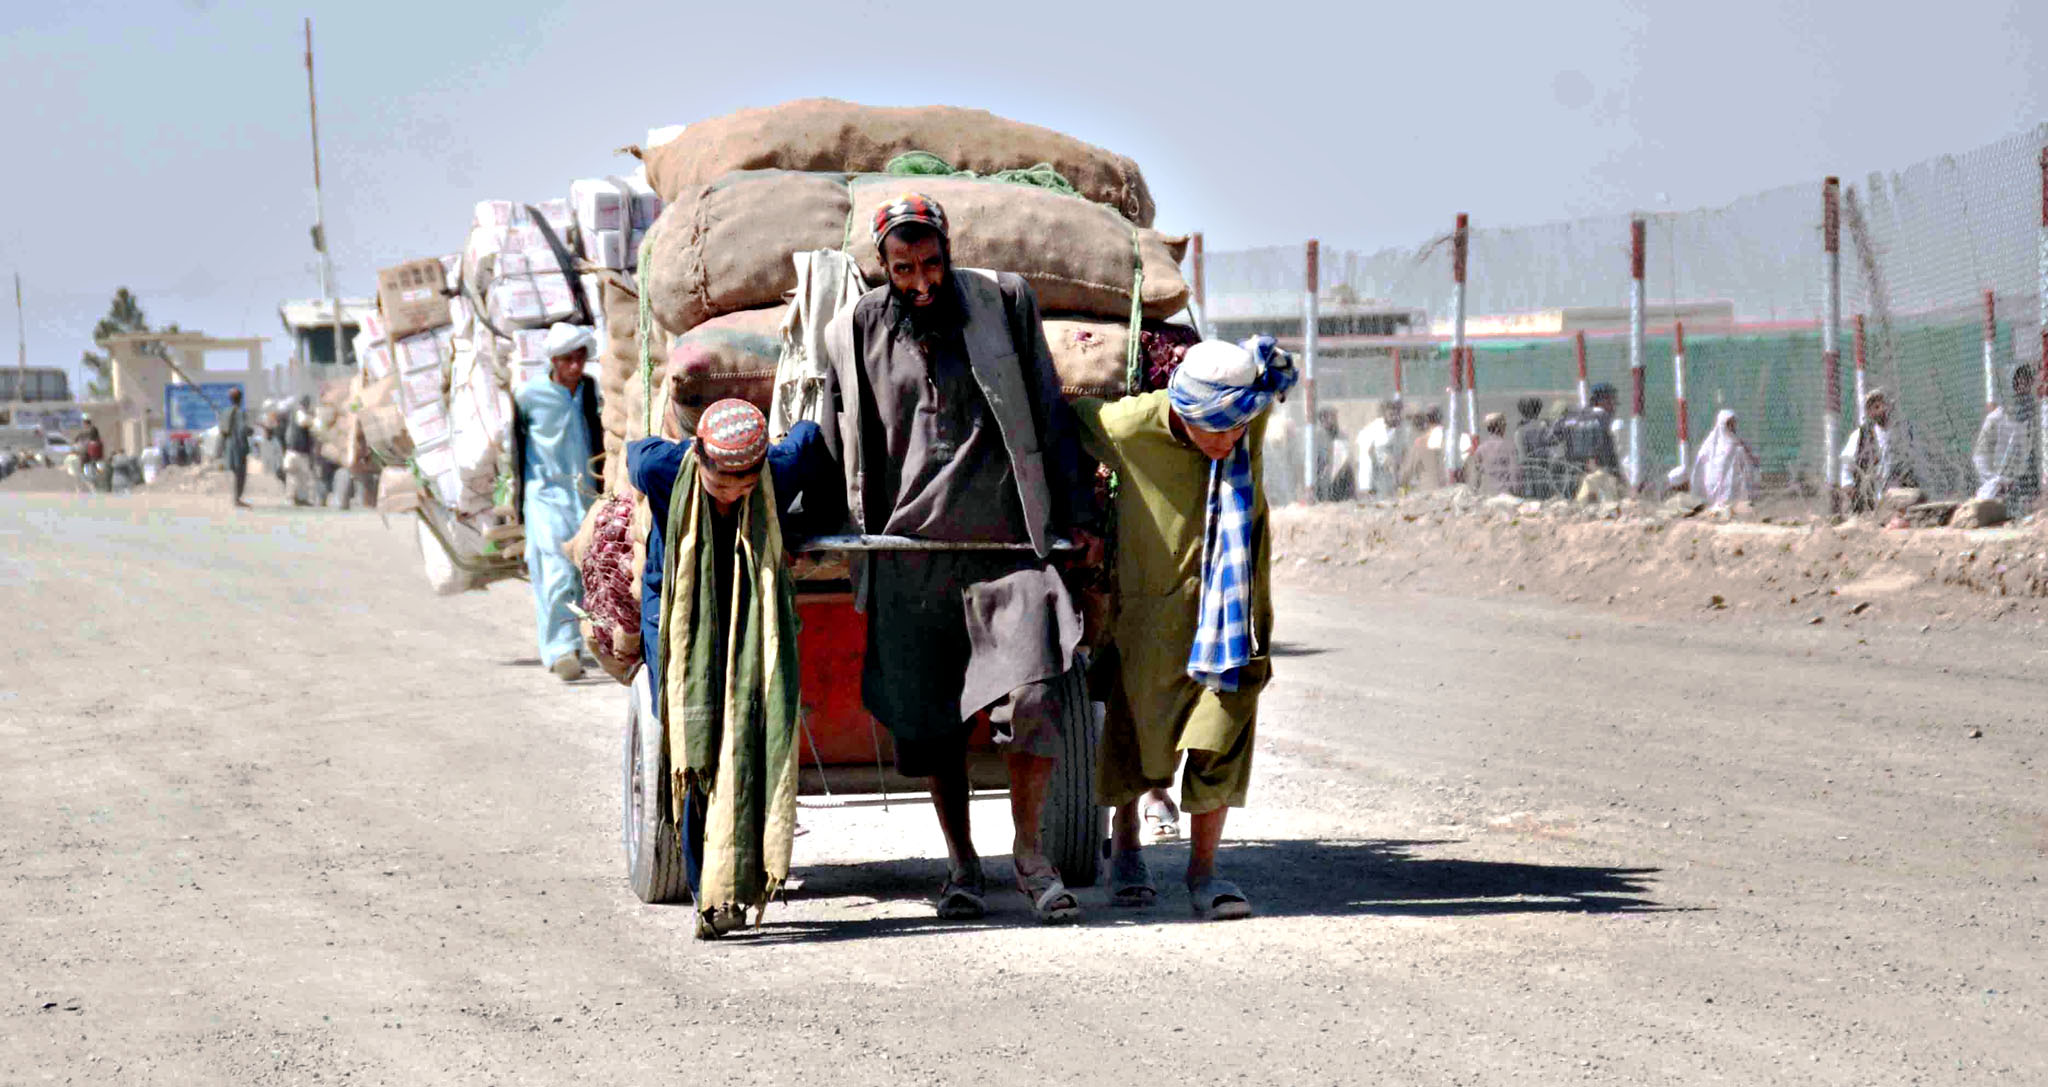 A man and his cart loaded with sacks of vegetables near the Afghan border in Chaman, Pakistan, 22 May 2015. The merchants wait for clearance to cross into Afghanistan with their goods